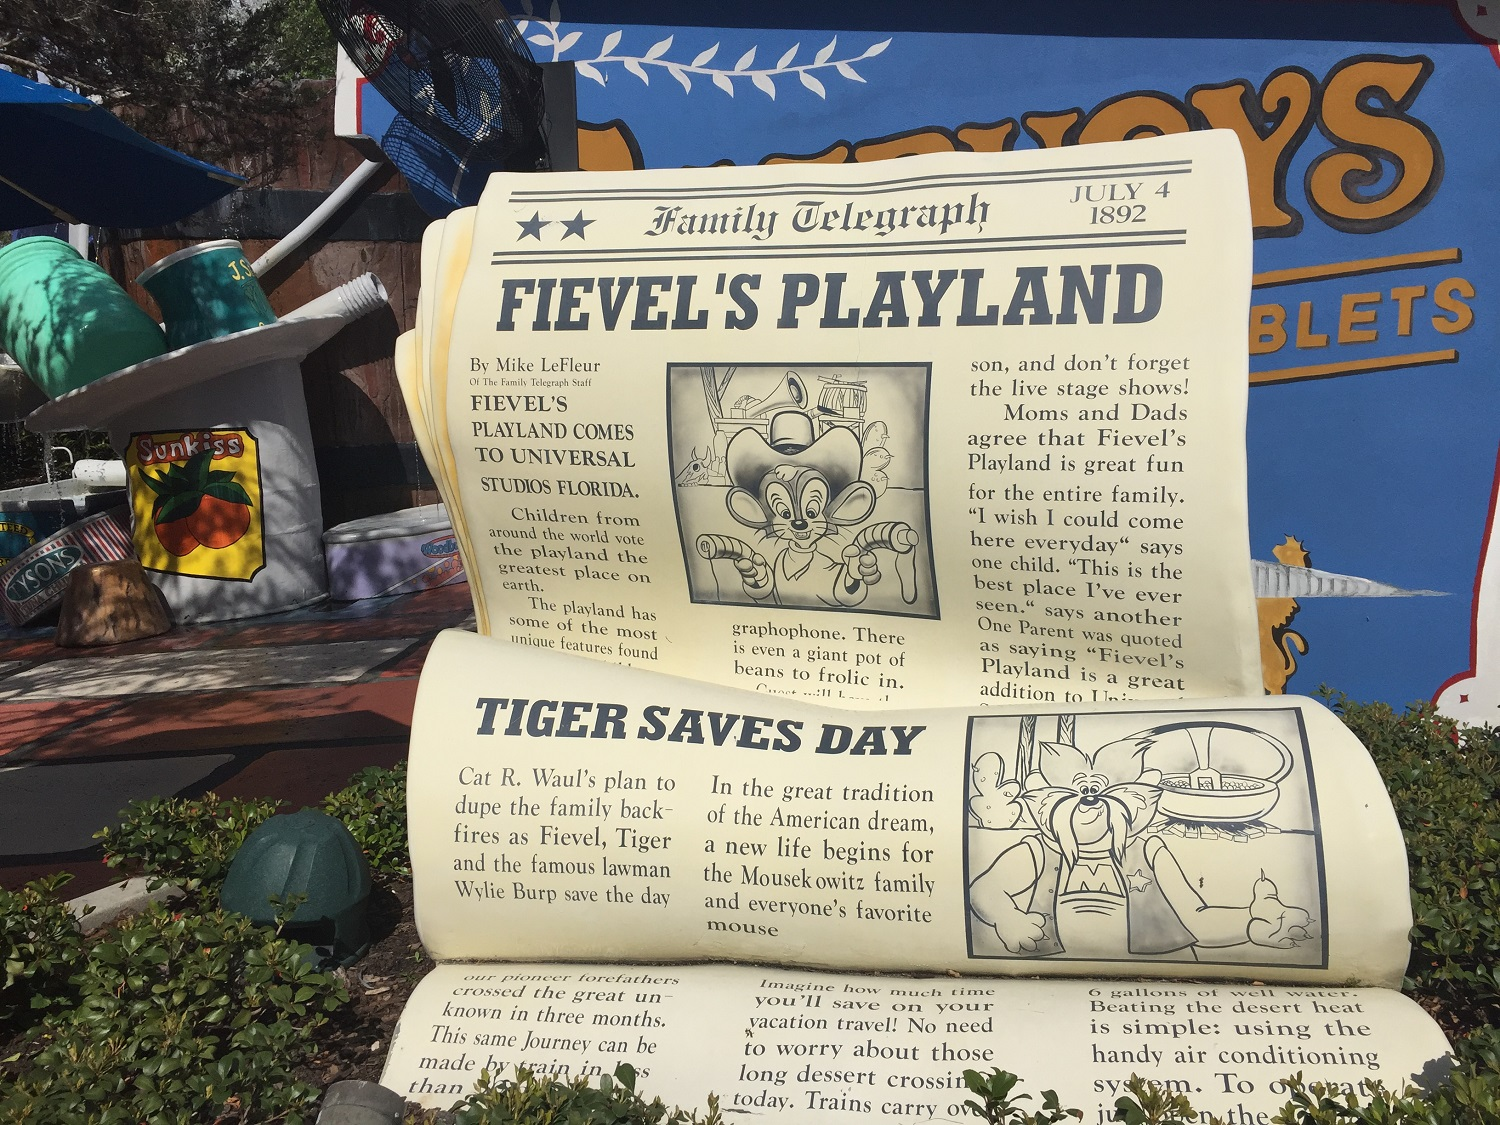 A newspaper announcing Fievel's Playland in Universal Studios Florida at the entrance of the play area.